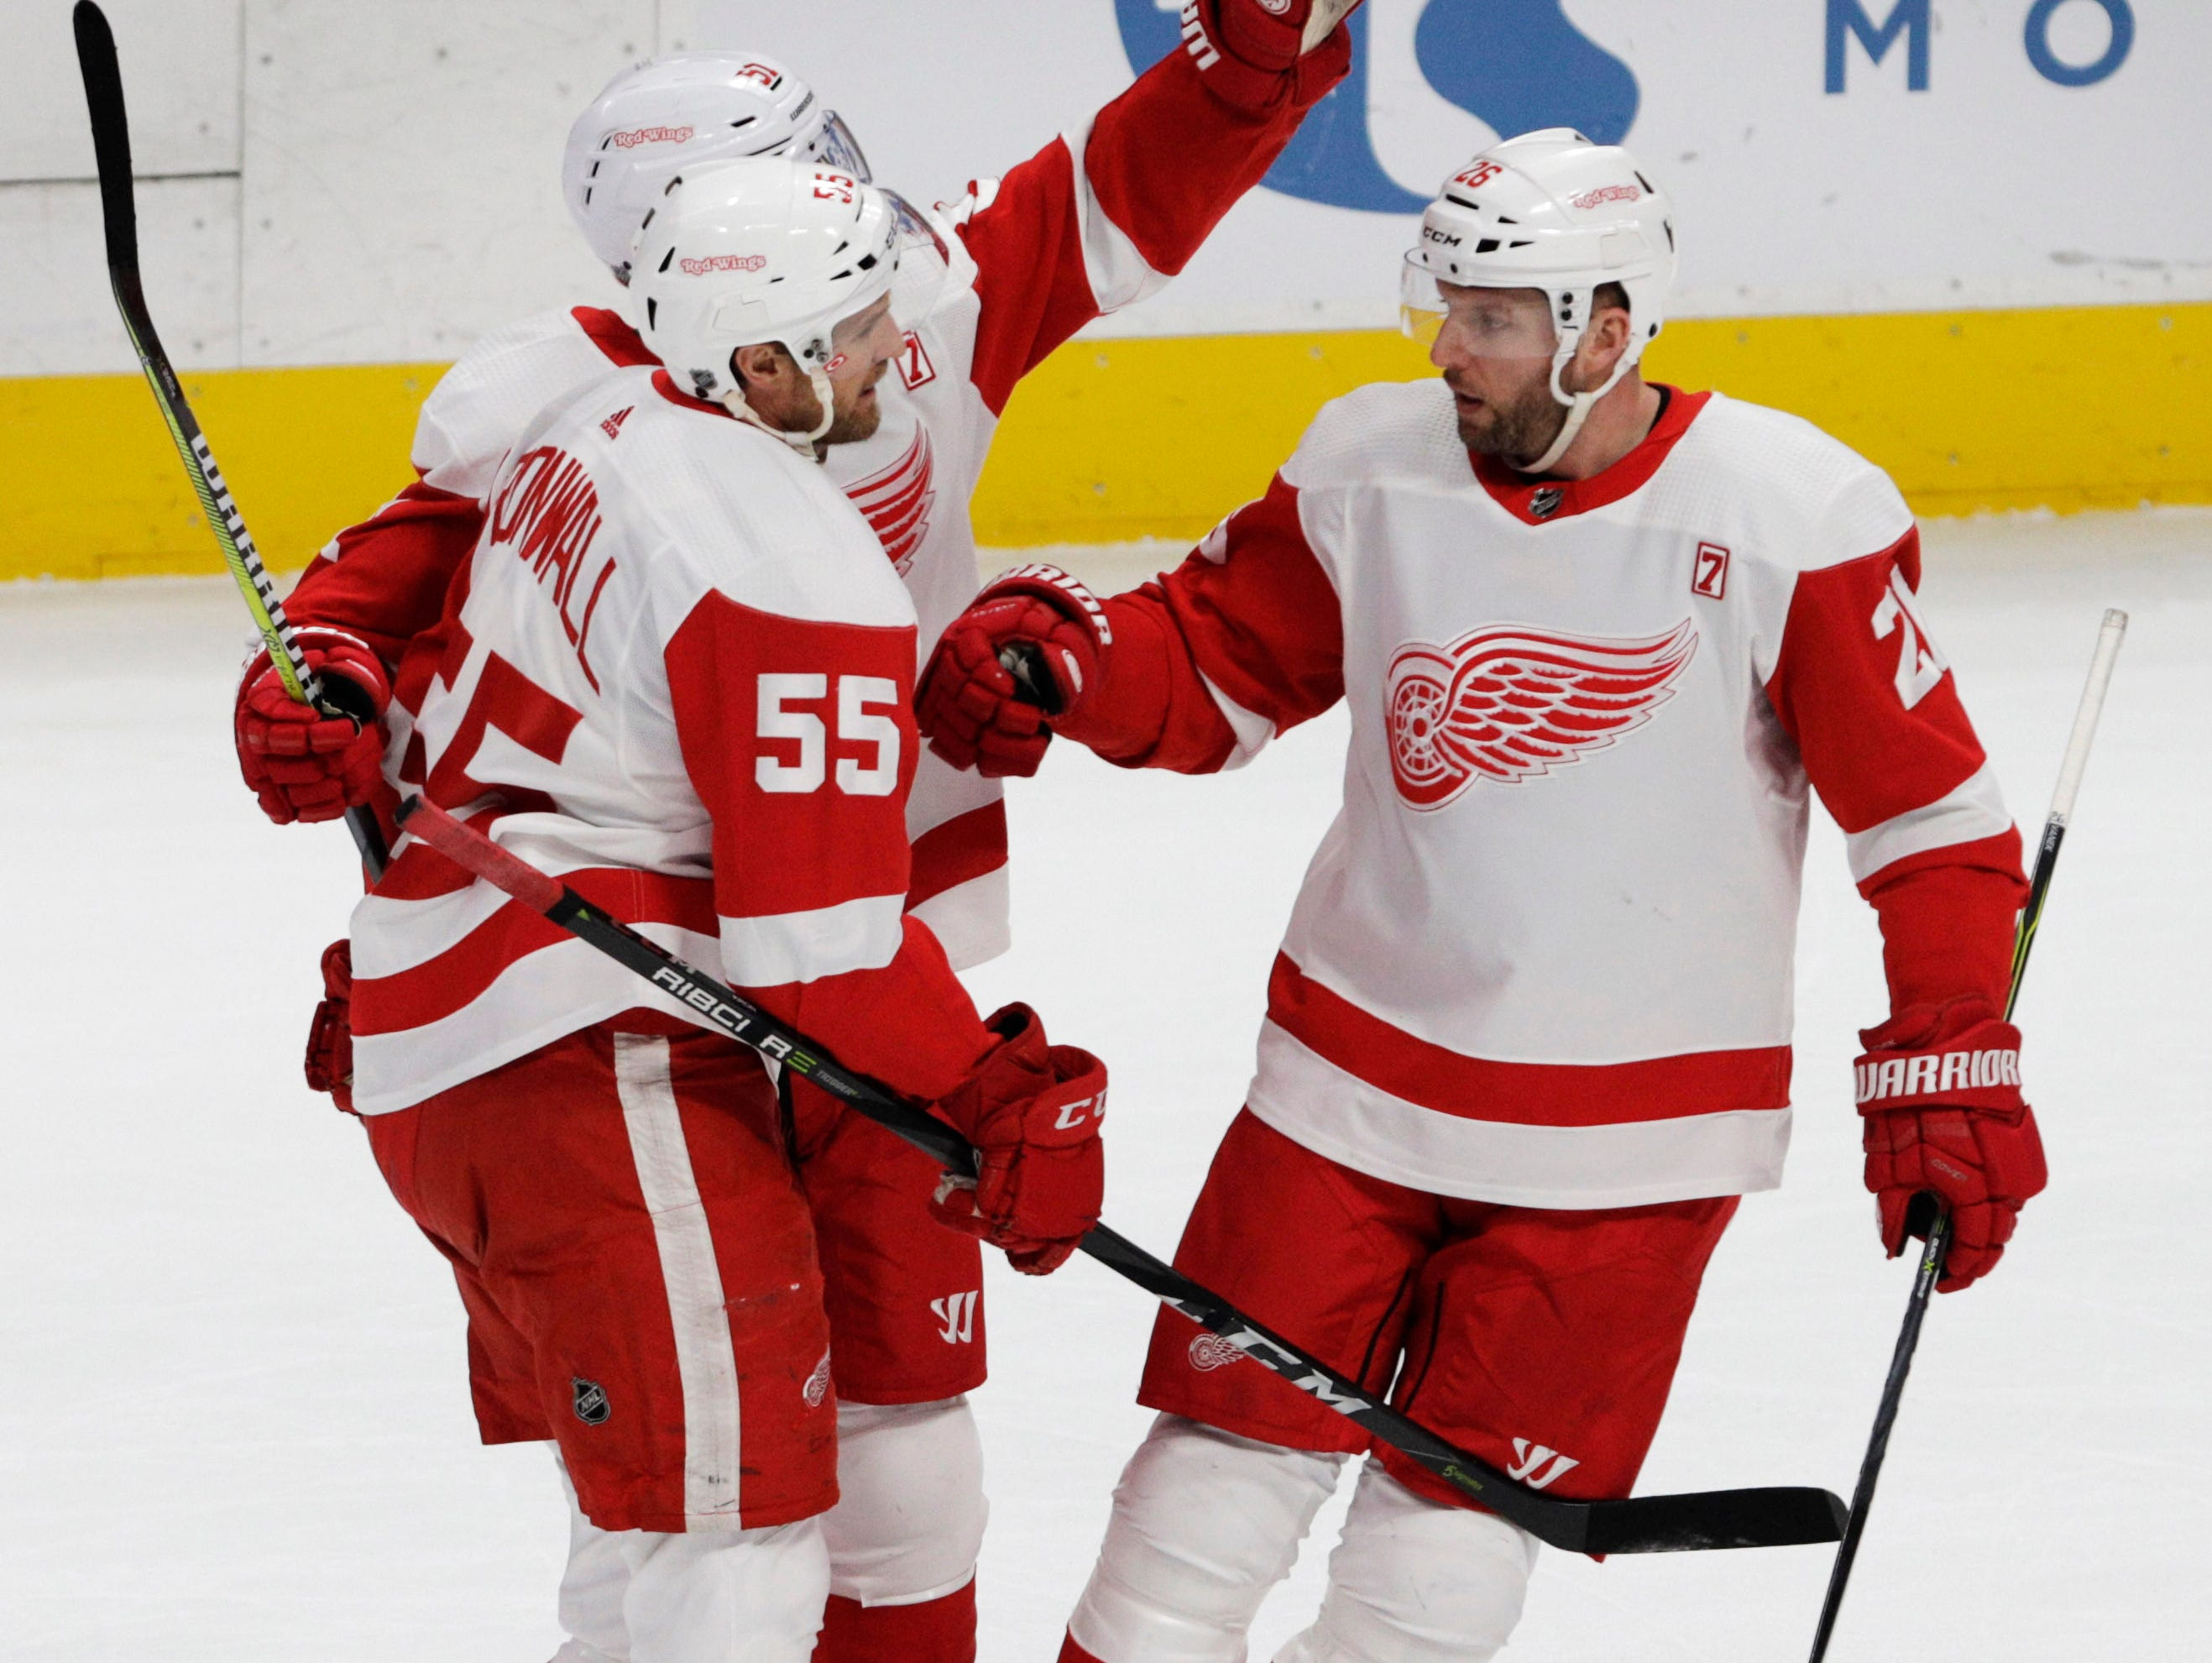 Detroit Red Wings left wing Thomas Vanek (26) congratulates defenseman Niklas Kronwall (55) on his goal during the first period of an NHL hockey game against the Colorado Avalanche in Denver, Tuesday, March 5, 2019.